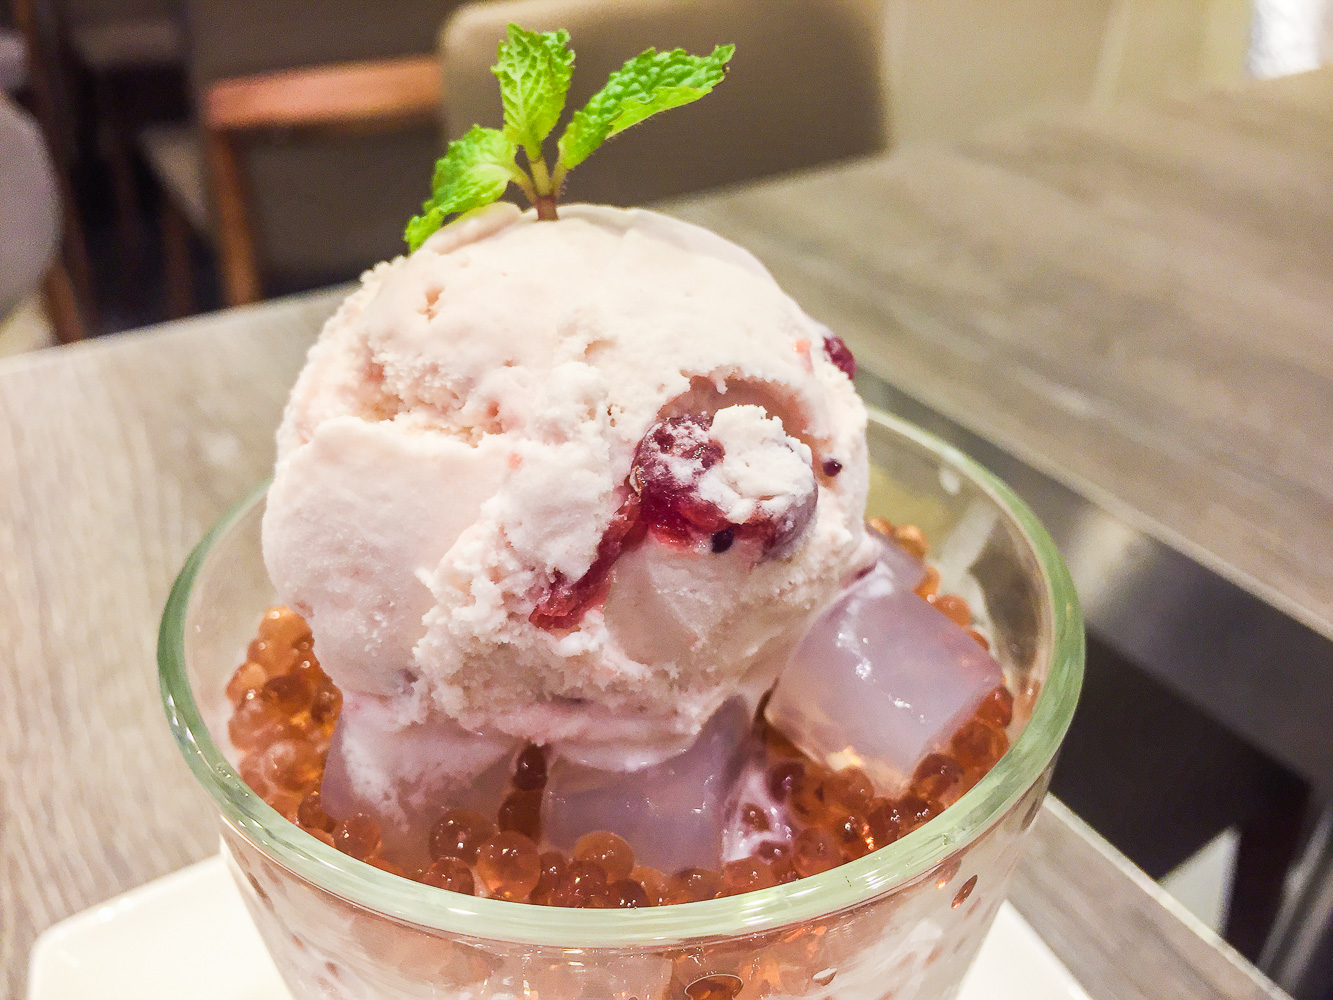 Dessert Kitchen Melbourne 10 Things To Try At The Dessert Kitchen Manila S Newest Sweet Spot